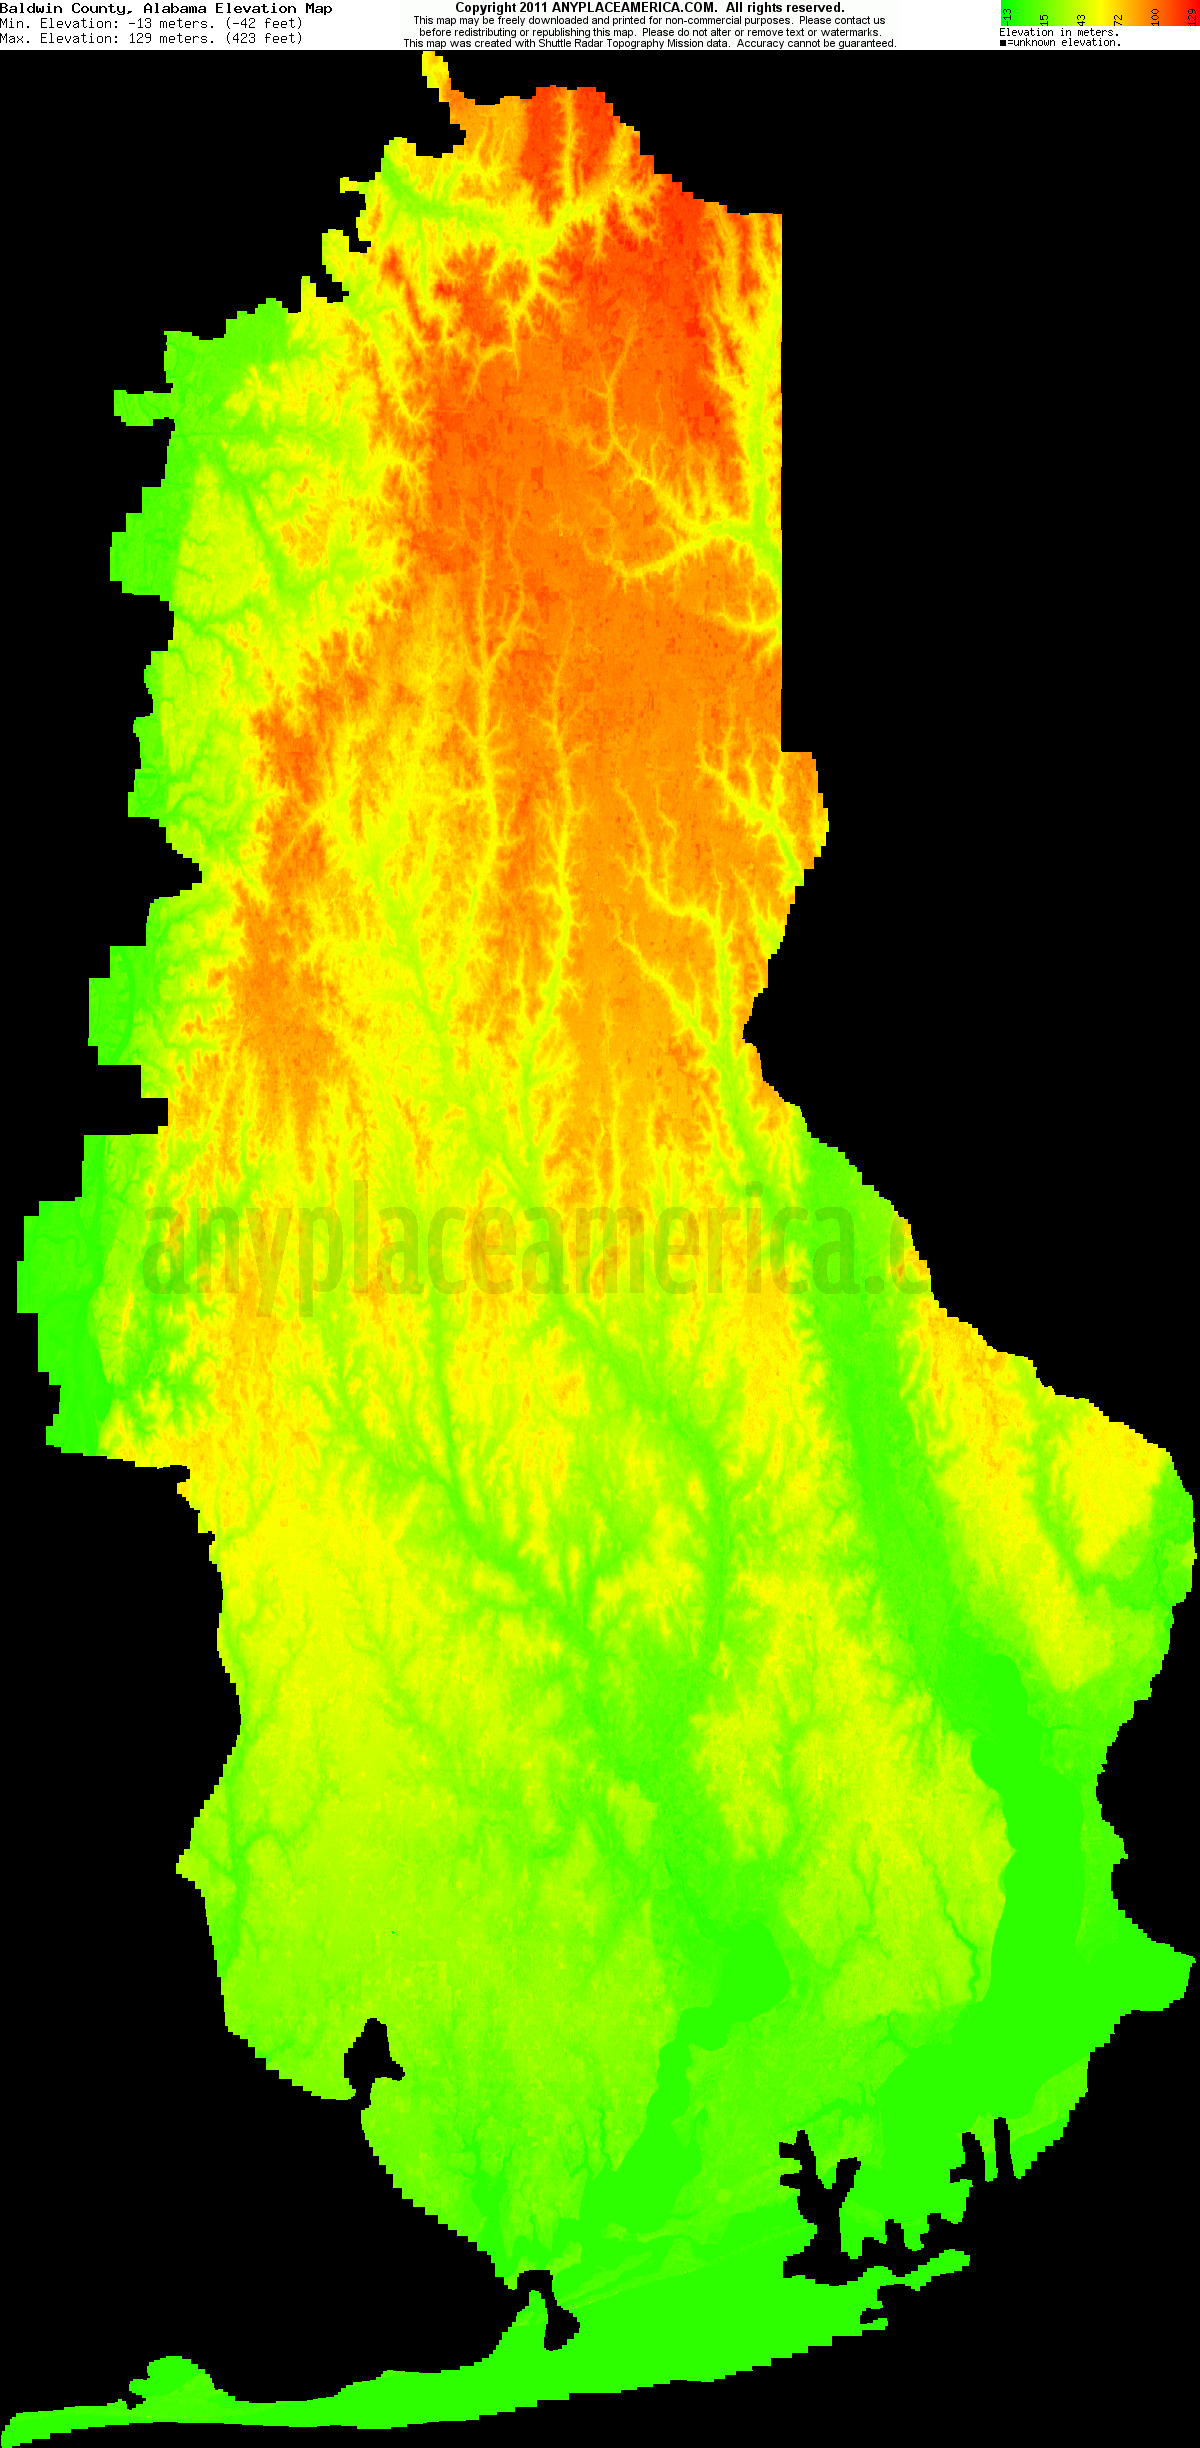 Download Baldwin County Elevation Map